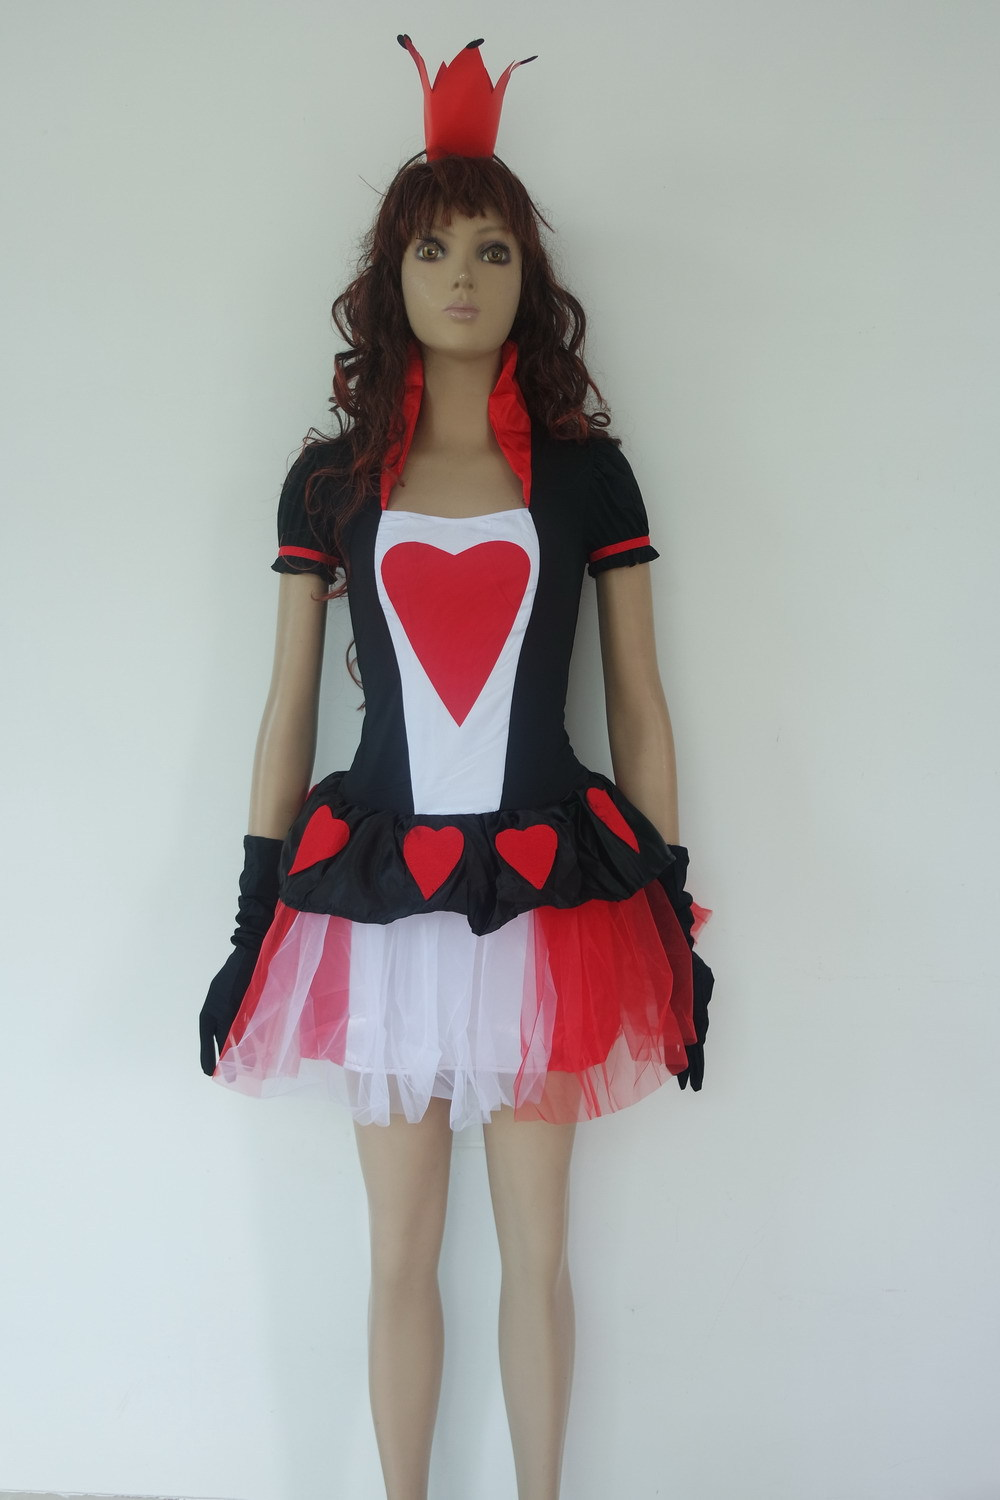 New Arrival <font><b>Halloween</b></font> Costume <font><b>Sexy</b></font> <font><b>Queen</b></font> Costume Women Fancy Dress With Heart Pattern <font><b>Sexy</b></font> Costume image